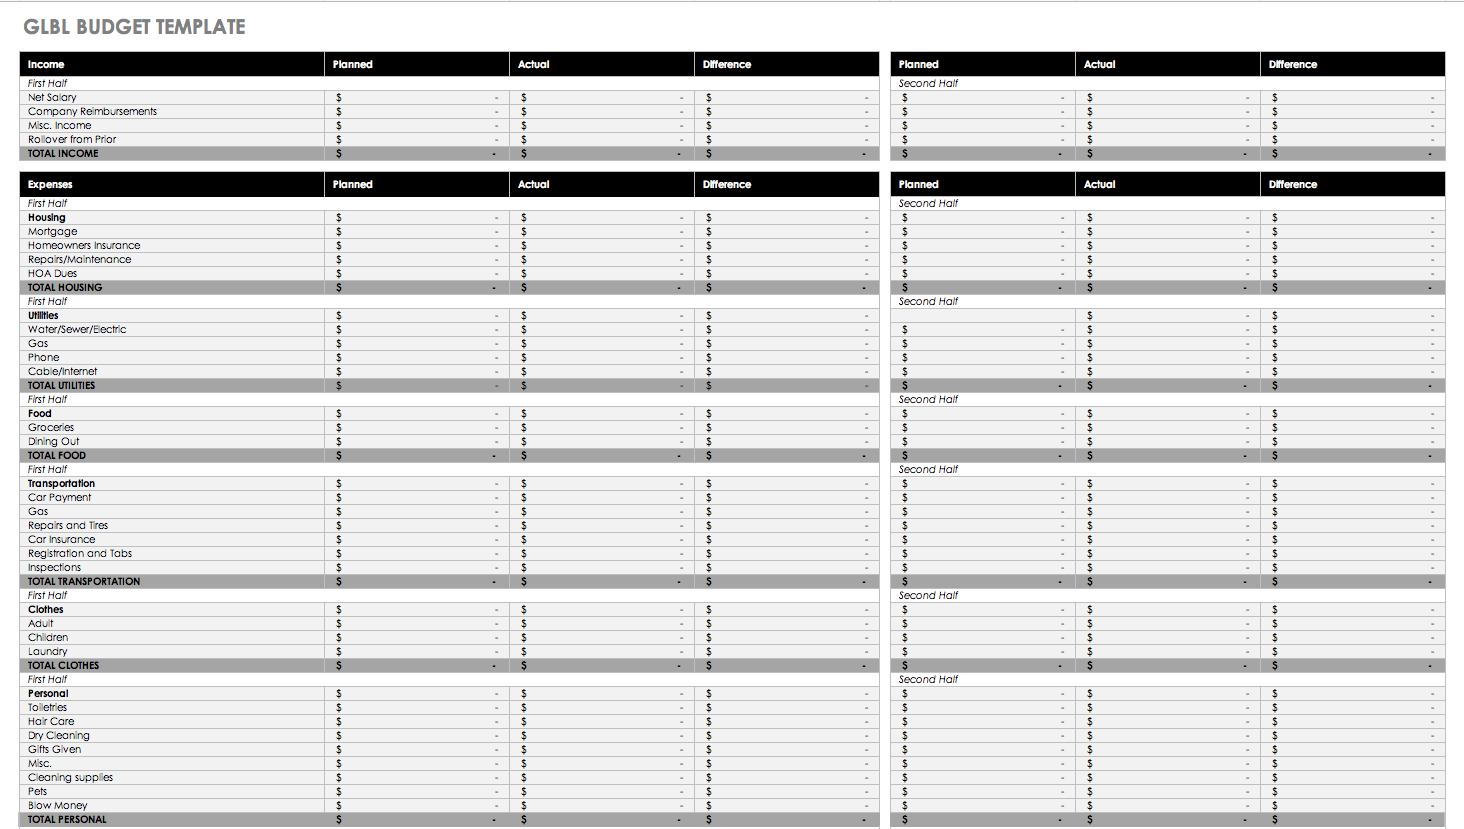 Excel Budget Spreadsheet Examples In Free Budget Templates In Excel For Any Use